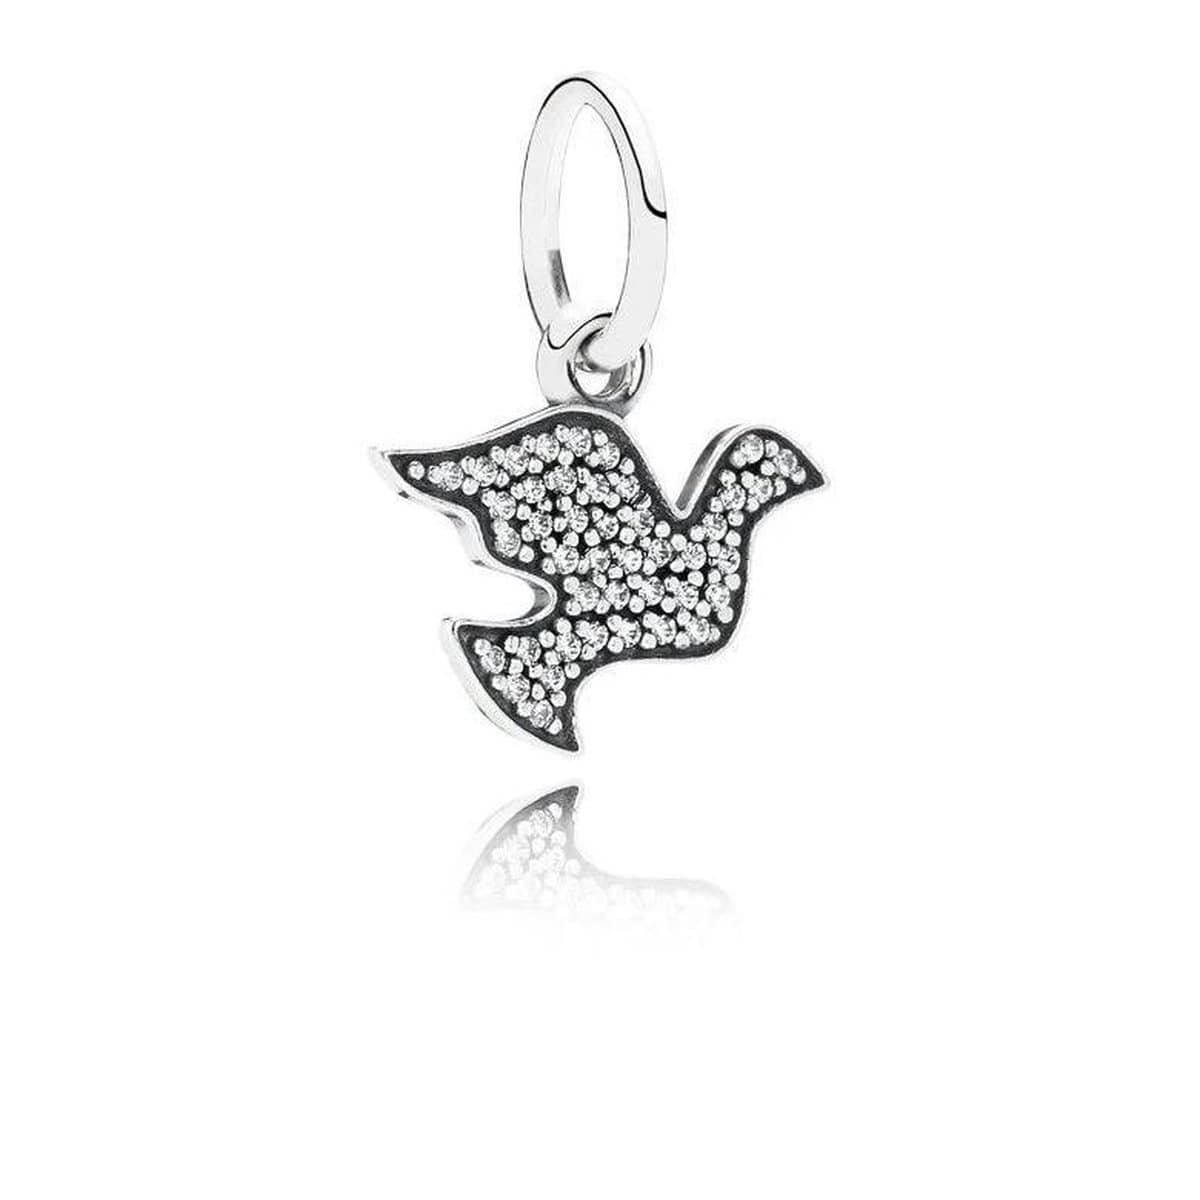 Dove Symbol of Peace Clear Cubic Zirconia Charm - 791350CZ-Pandora-Renee Taylor Gallery